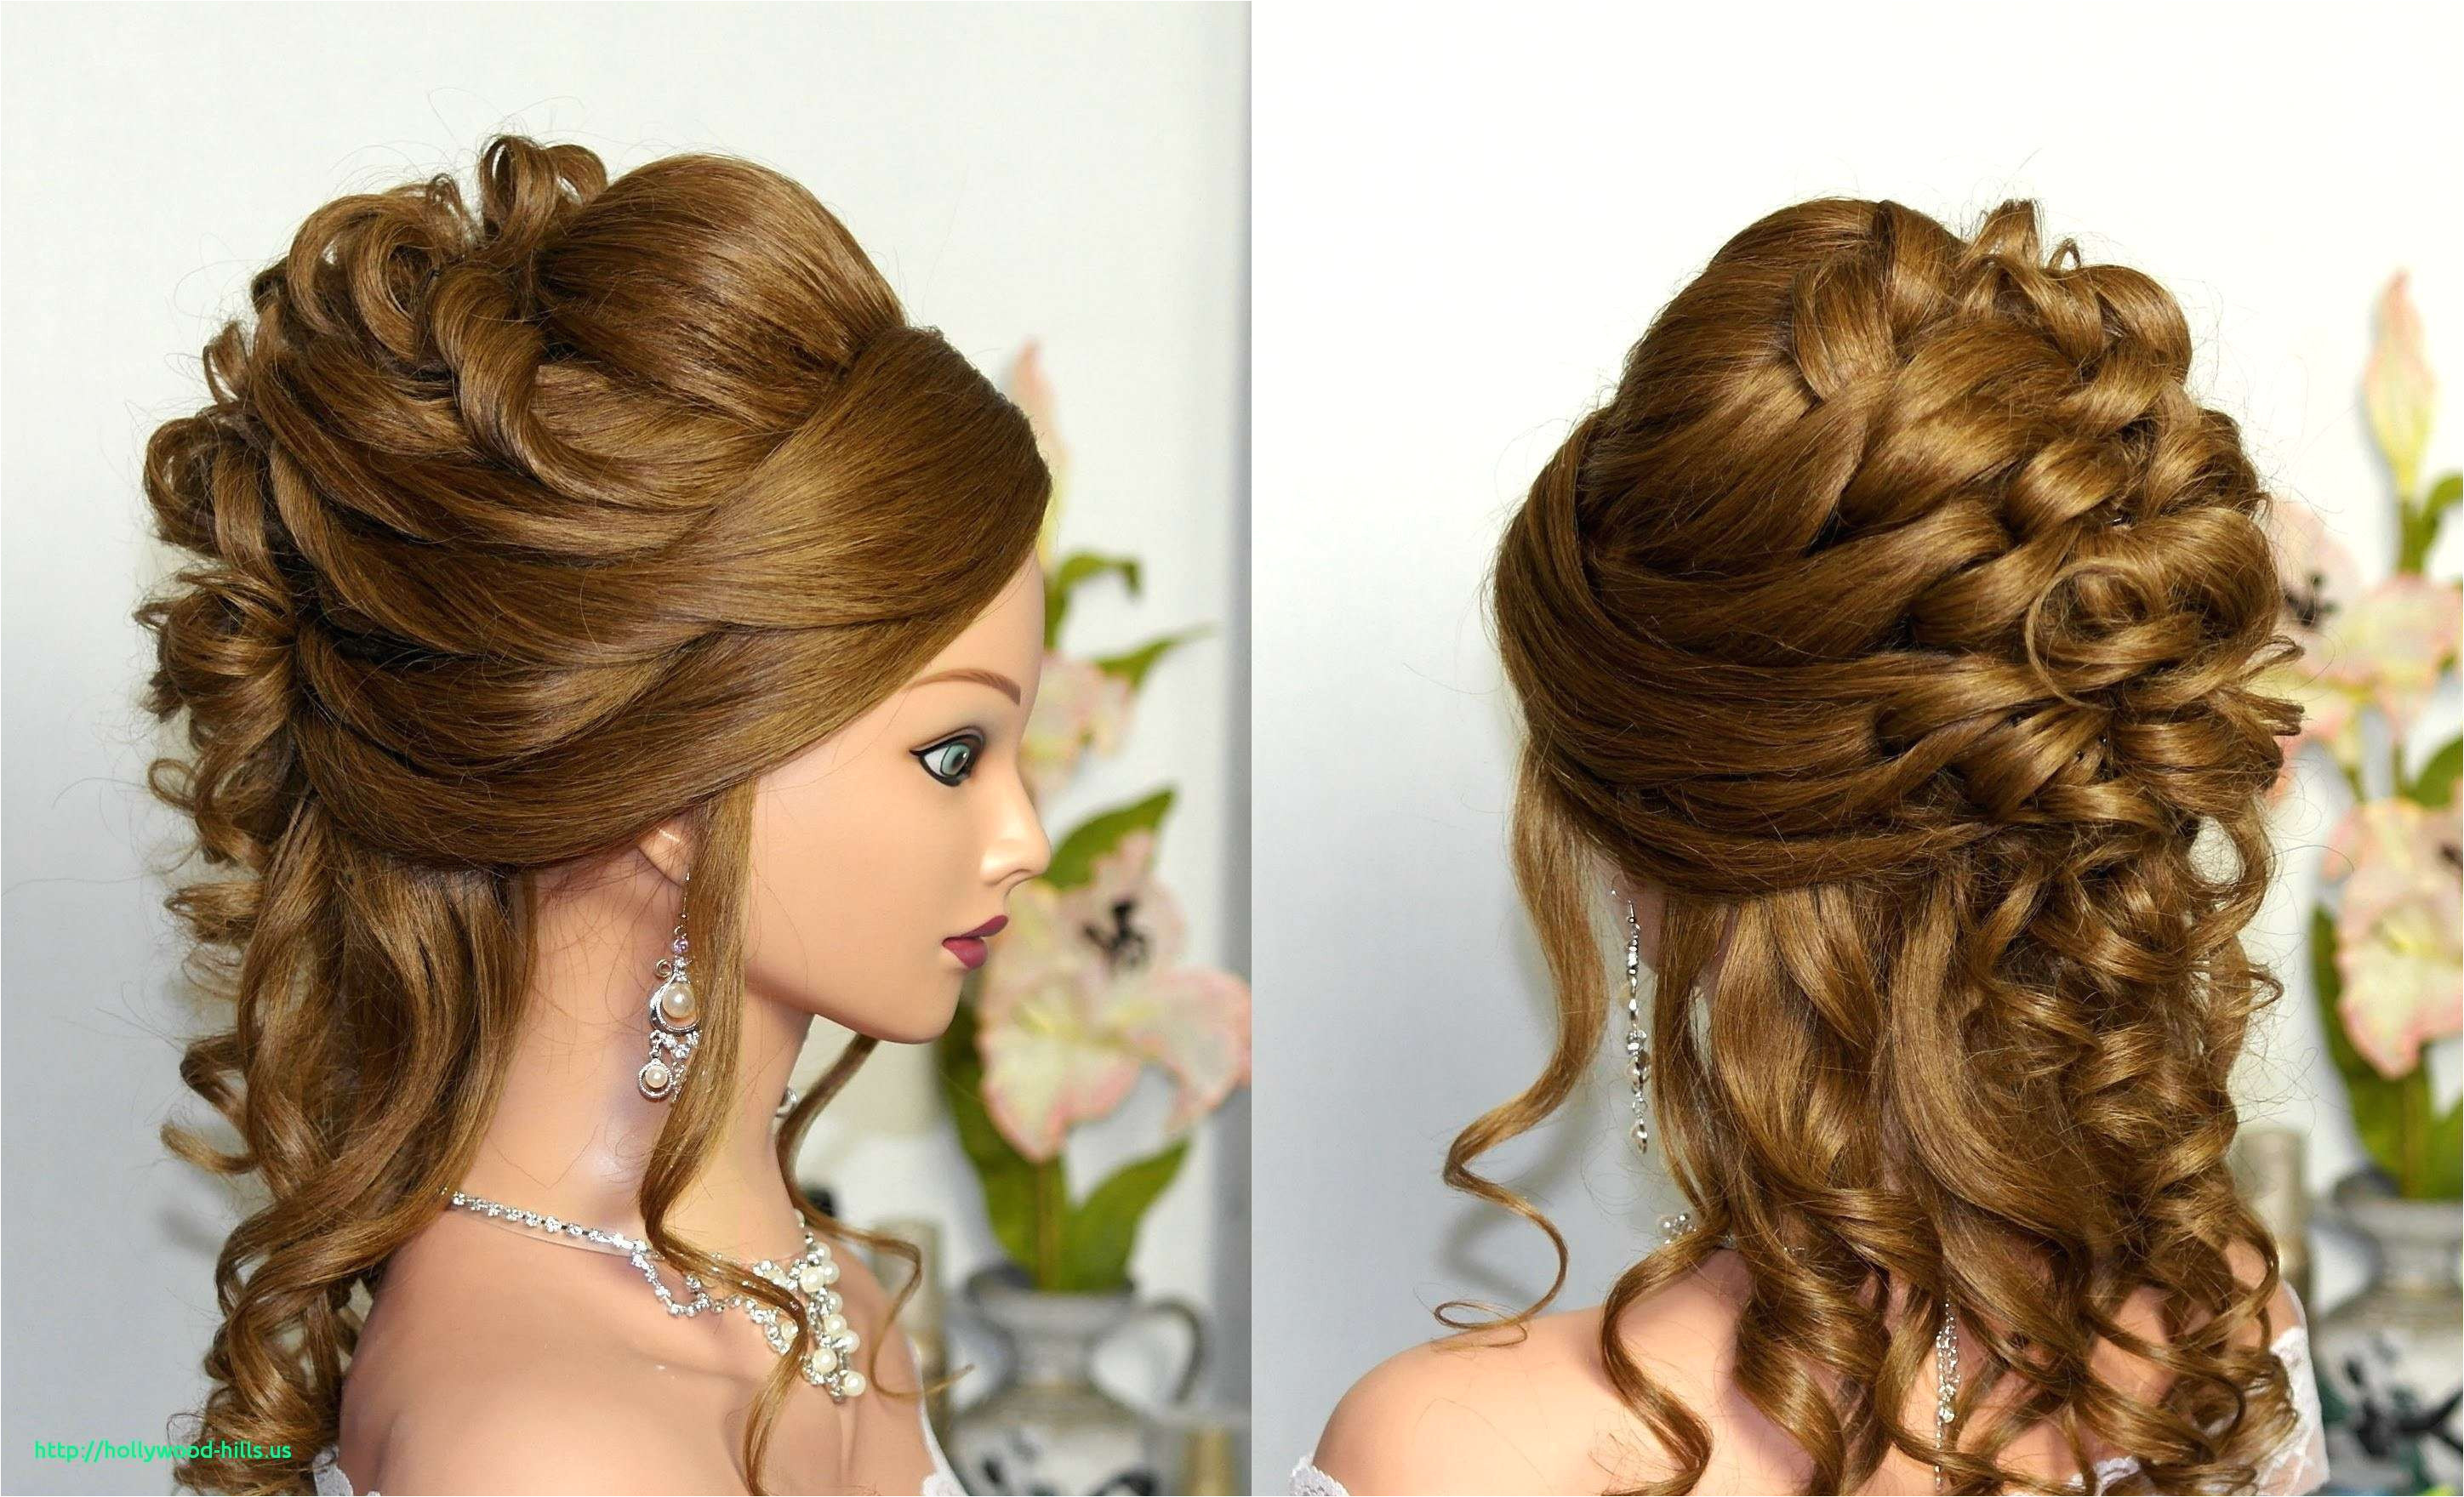 Bridesmaid Hairstyles for Short Curly Hair Inspirational Wedding Hairstyles Curls to the Side Elegant 32 Modern